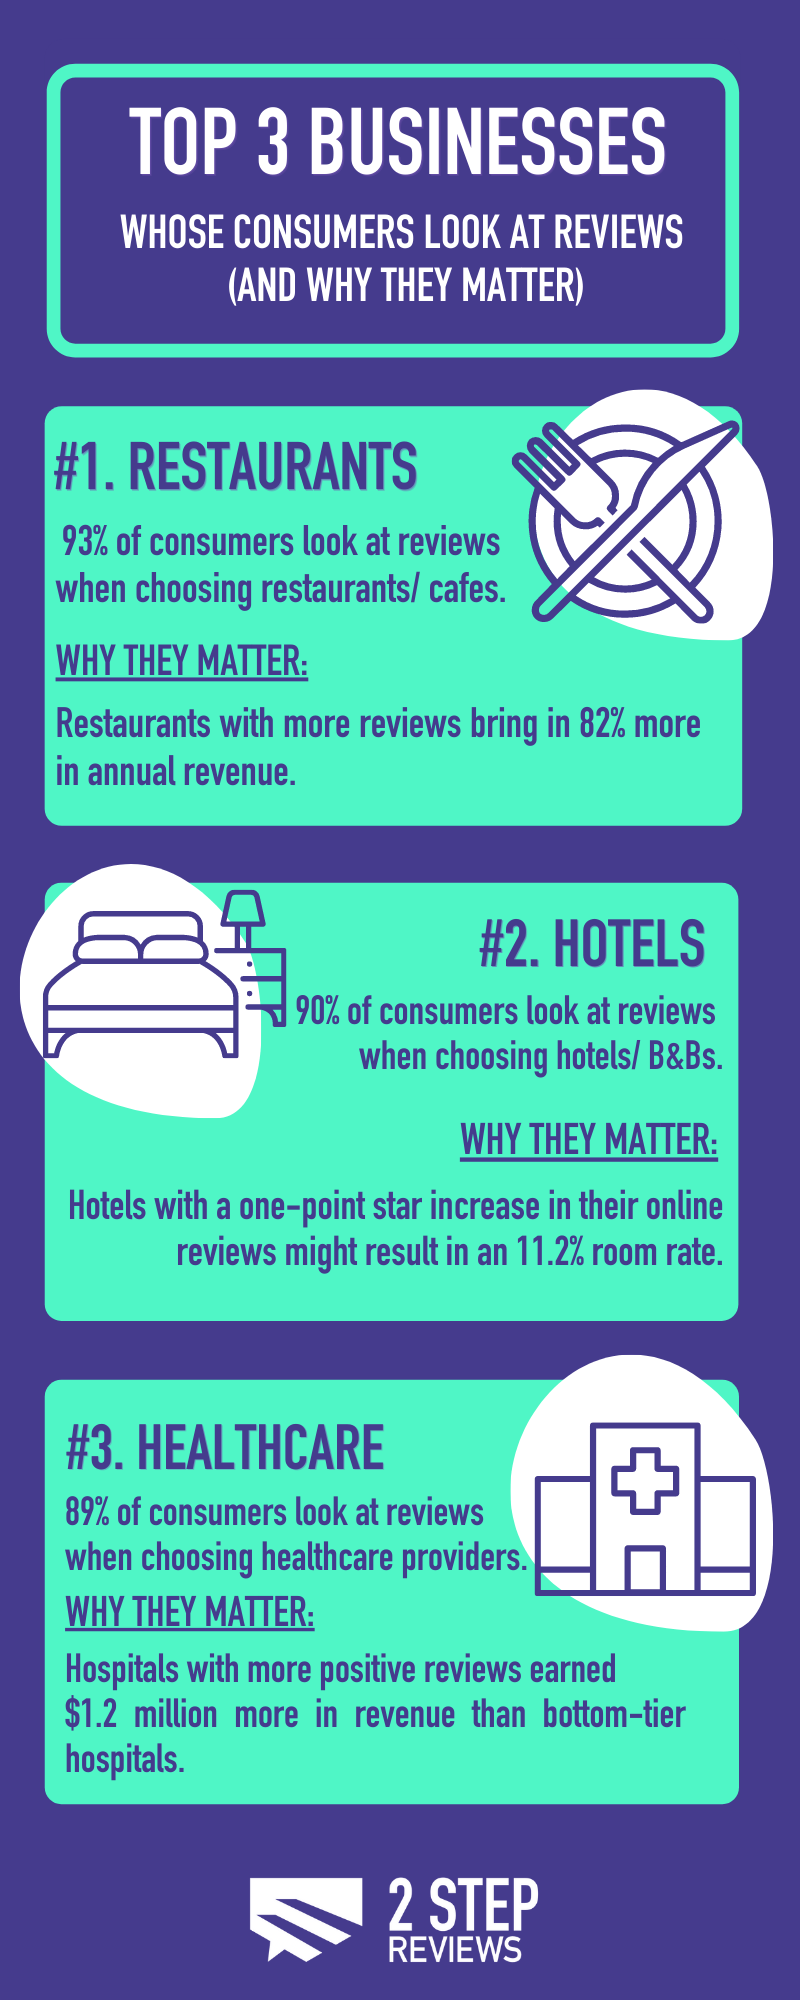 infographic of the top 3 businesses whose customers look at reviews